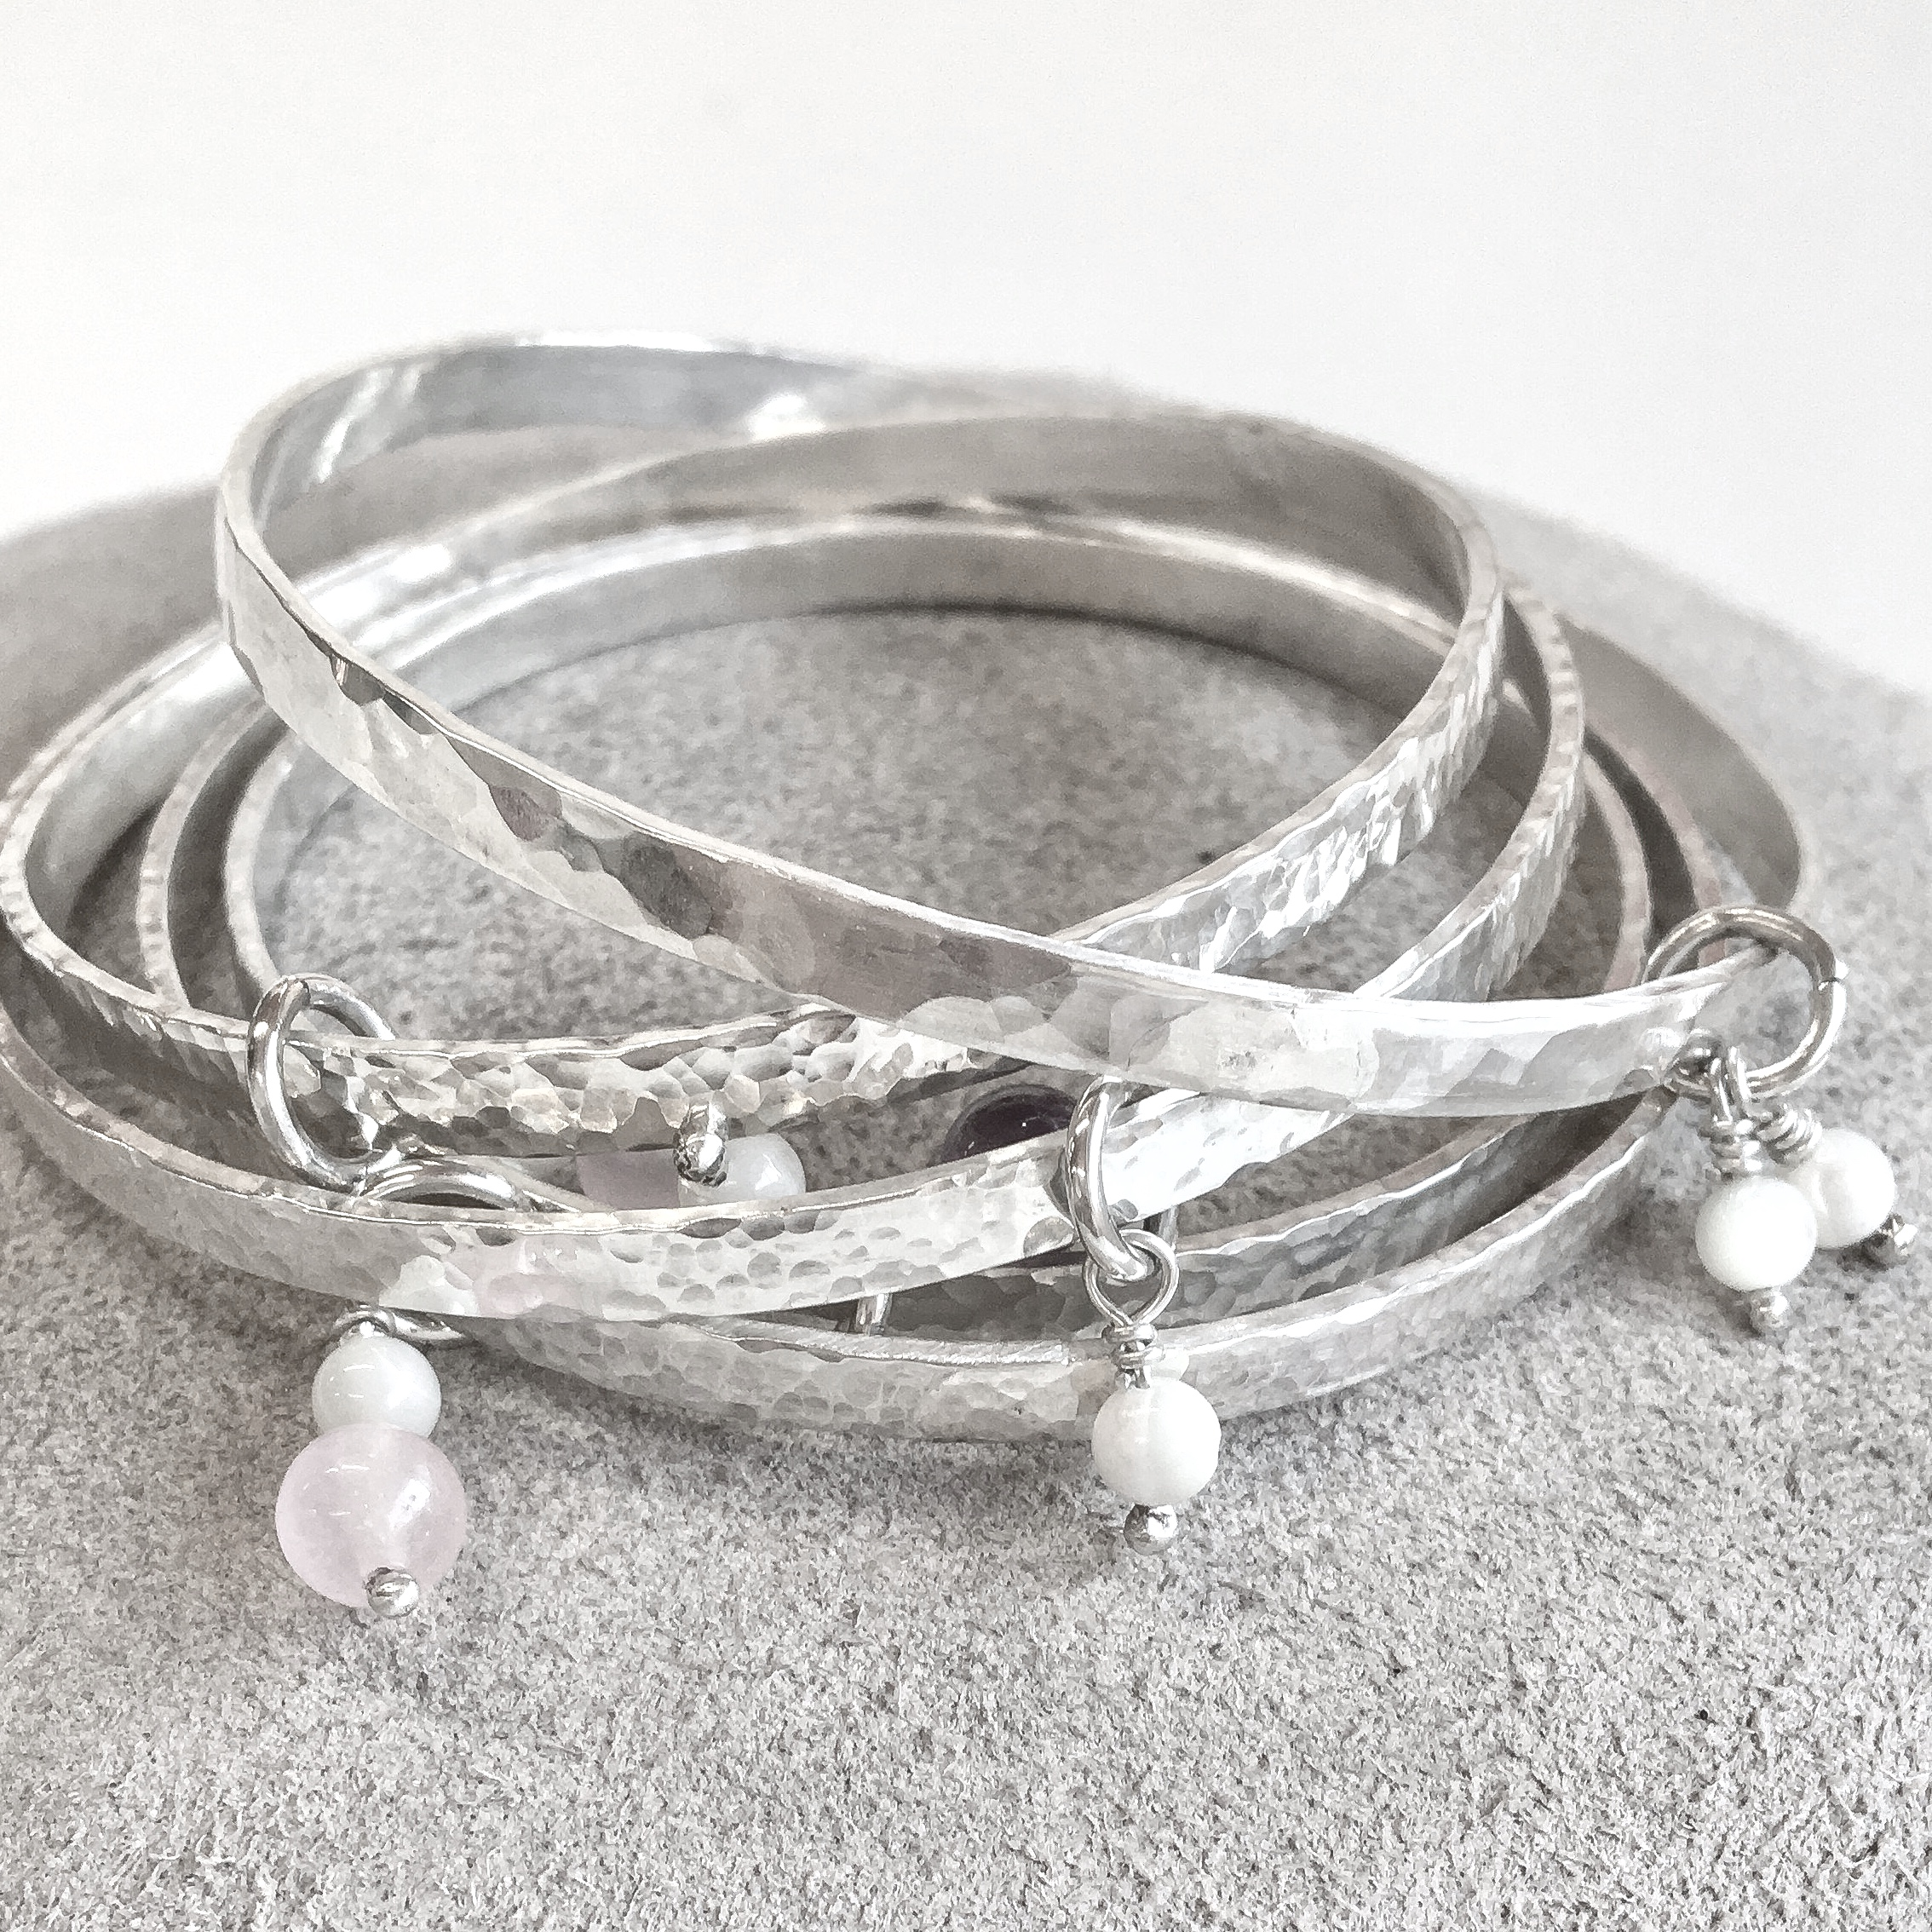 Make your own sterling silver bangle workshop - £75 -